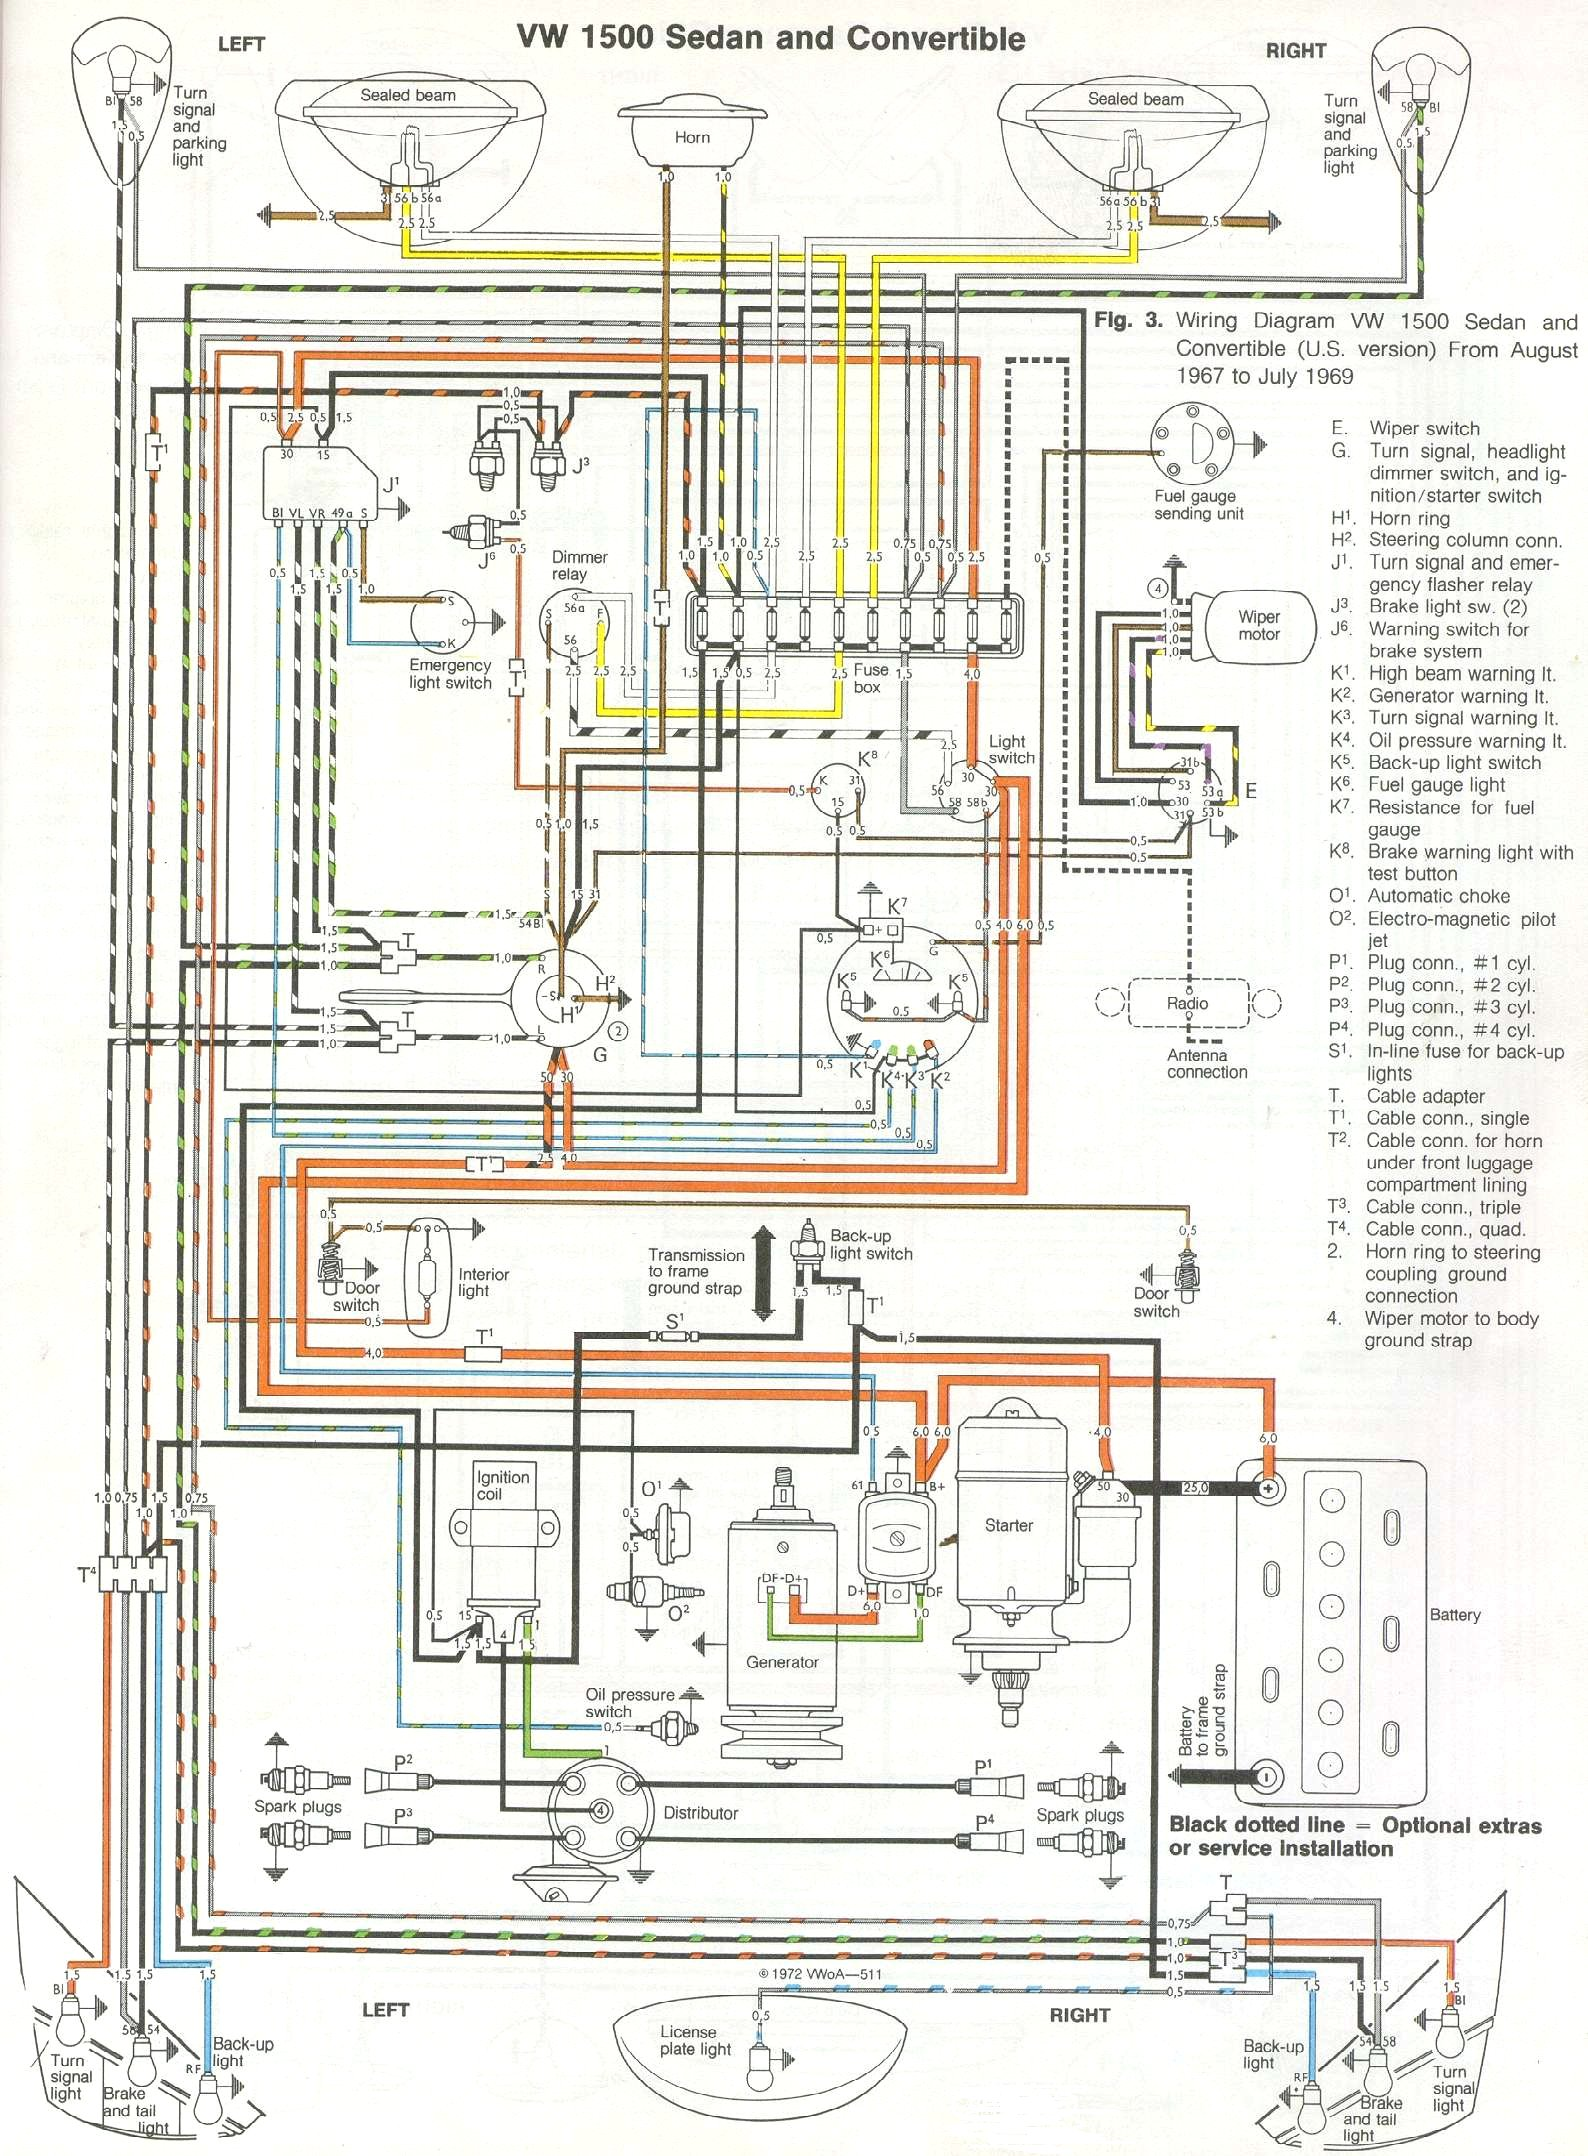 Vw Wiring Harness Diagram Guide And Troubleshooting Of Door 1969 71 Beetle Thegoldenbug Com Rh 2006 Jetta Mk3